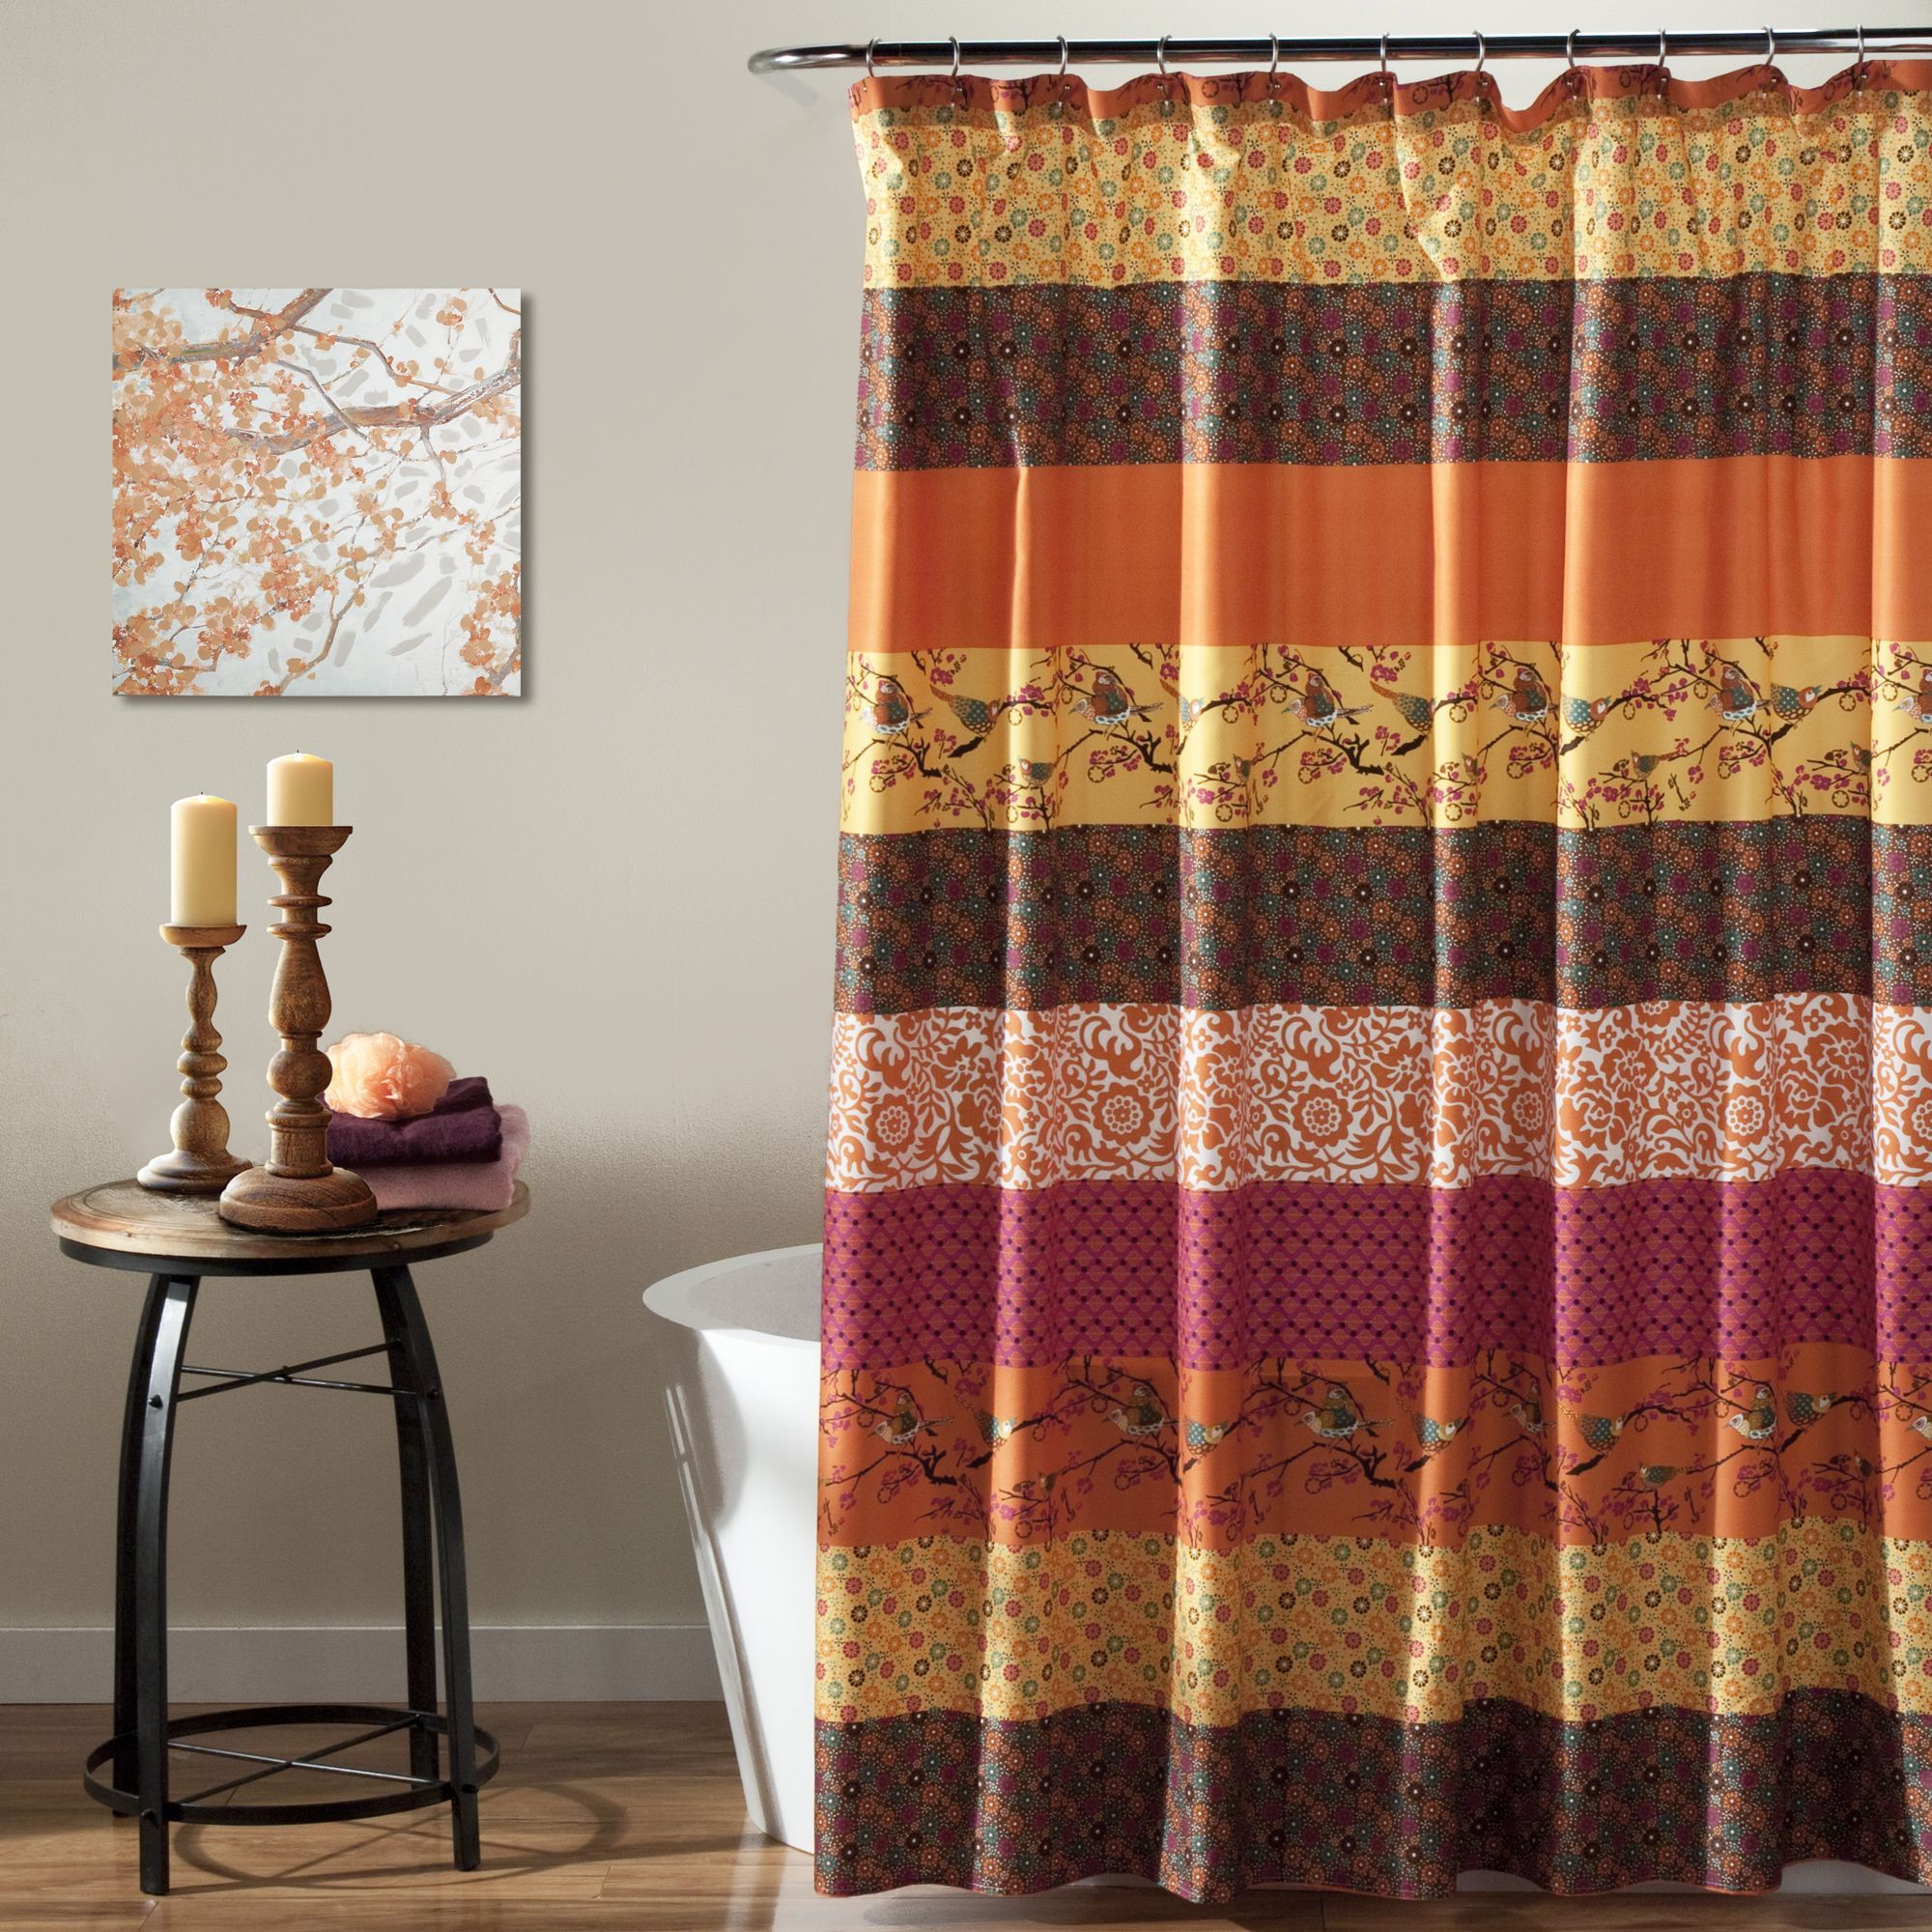 loading ilivsuritangerine tangerine suritangerine collection curtain iliv curtains fabrics suri fabric z hummingbird zoom